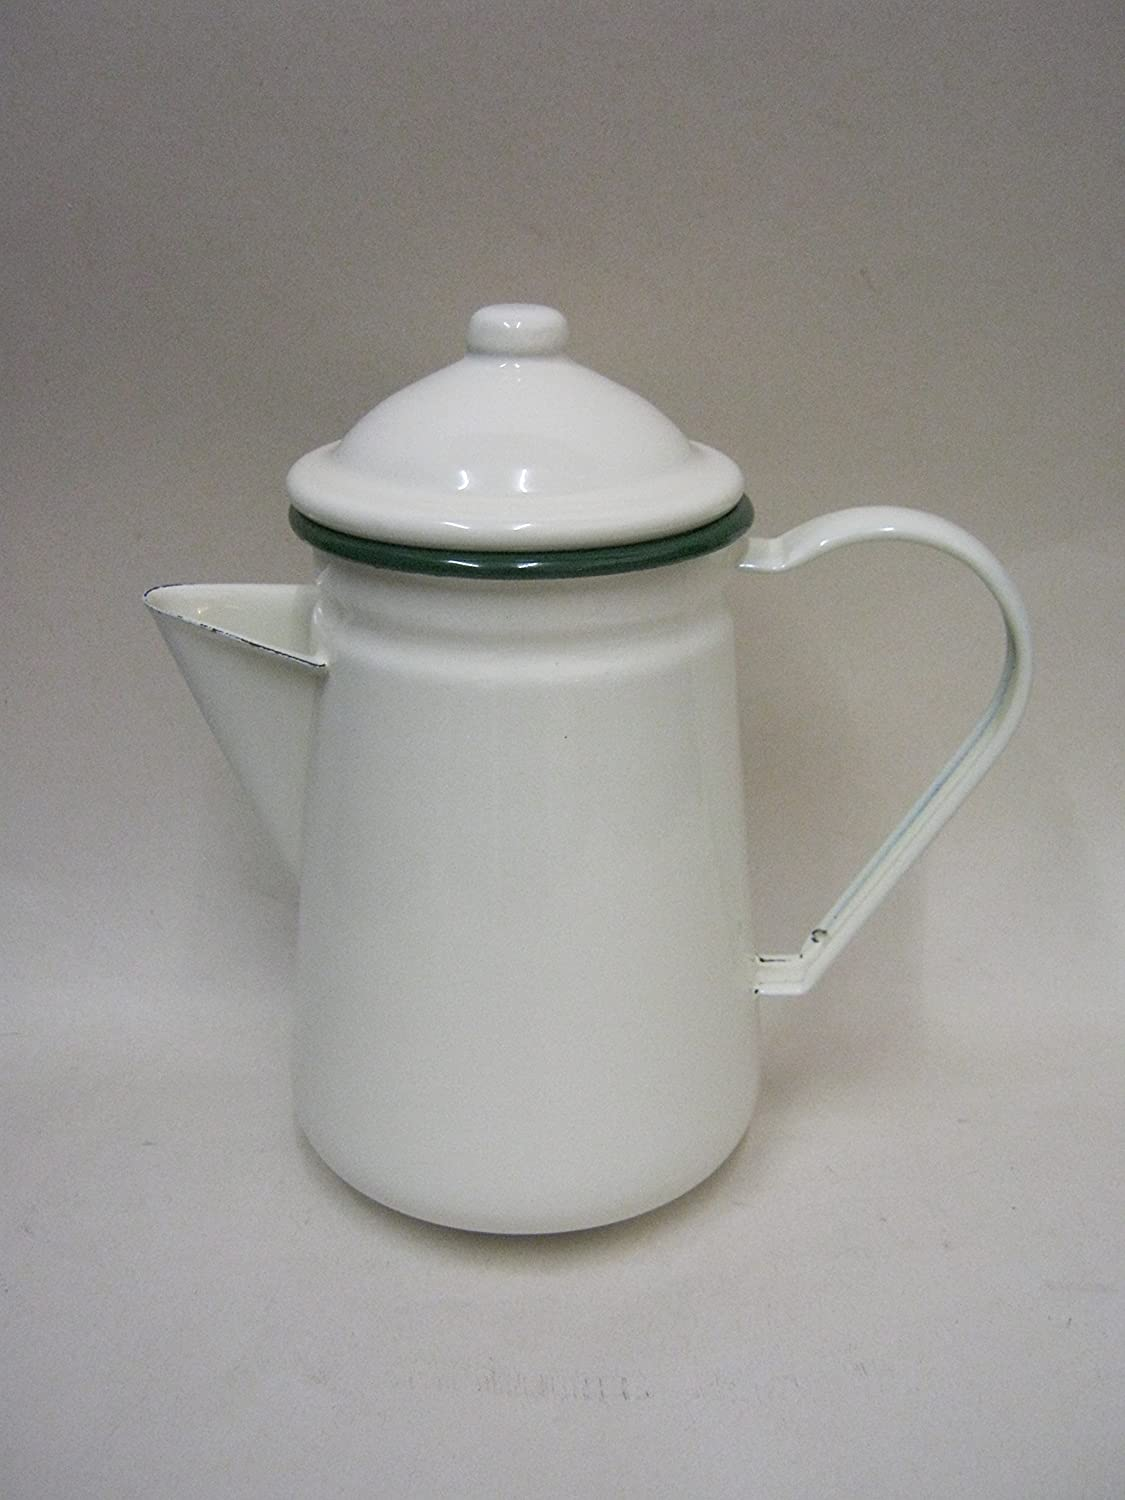 New Victor Cream Enamel Coffee Pot 1 Litre With Green Trim